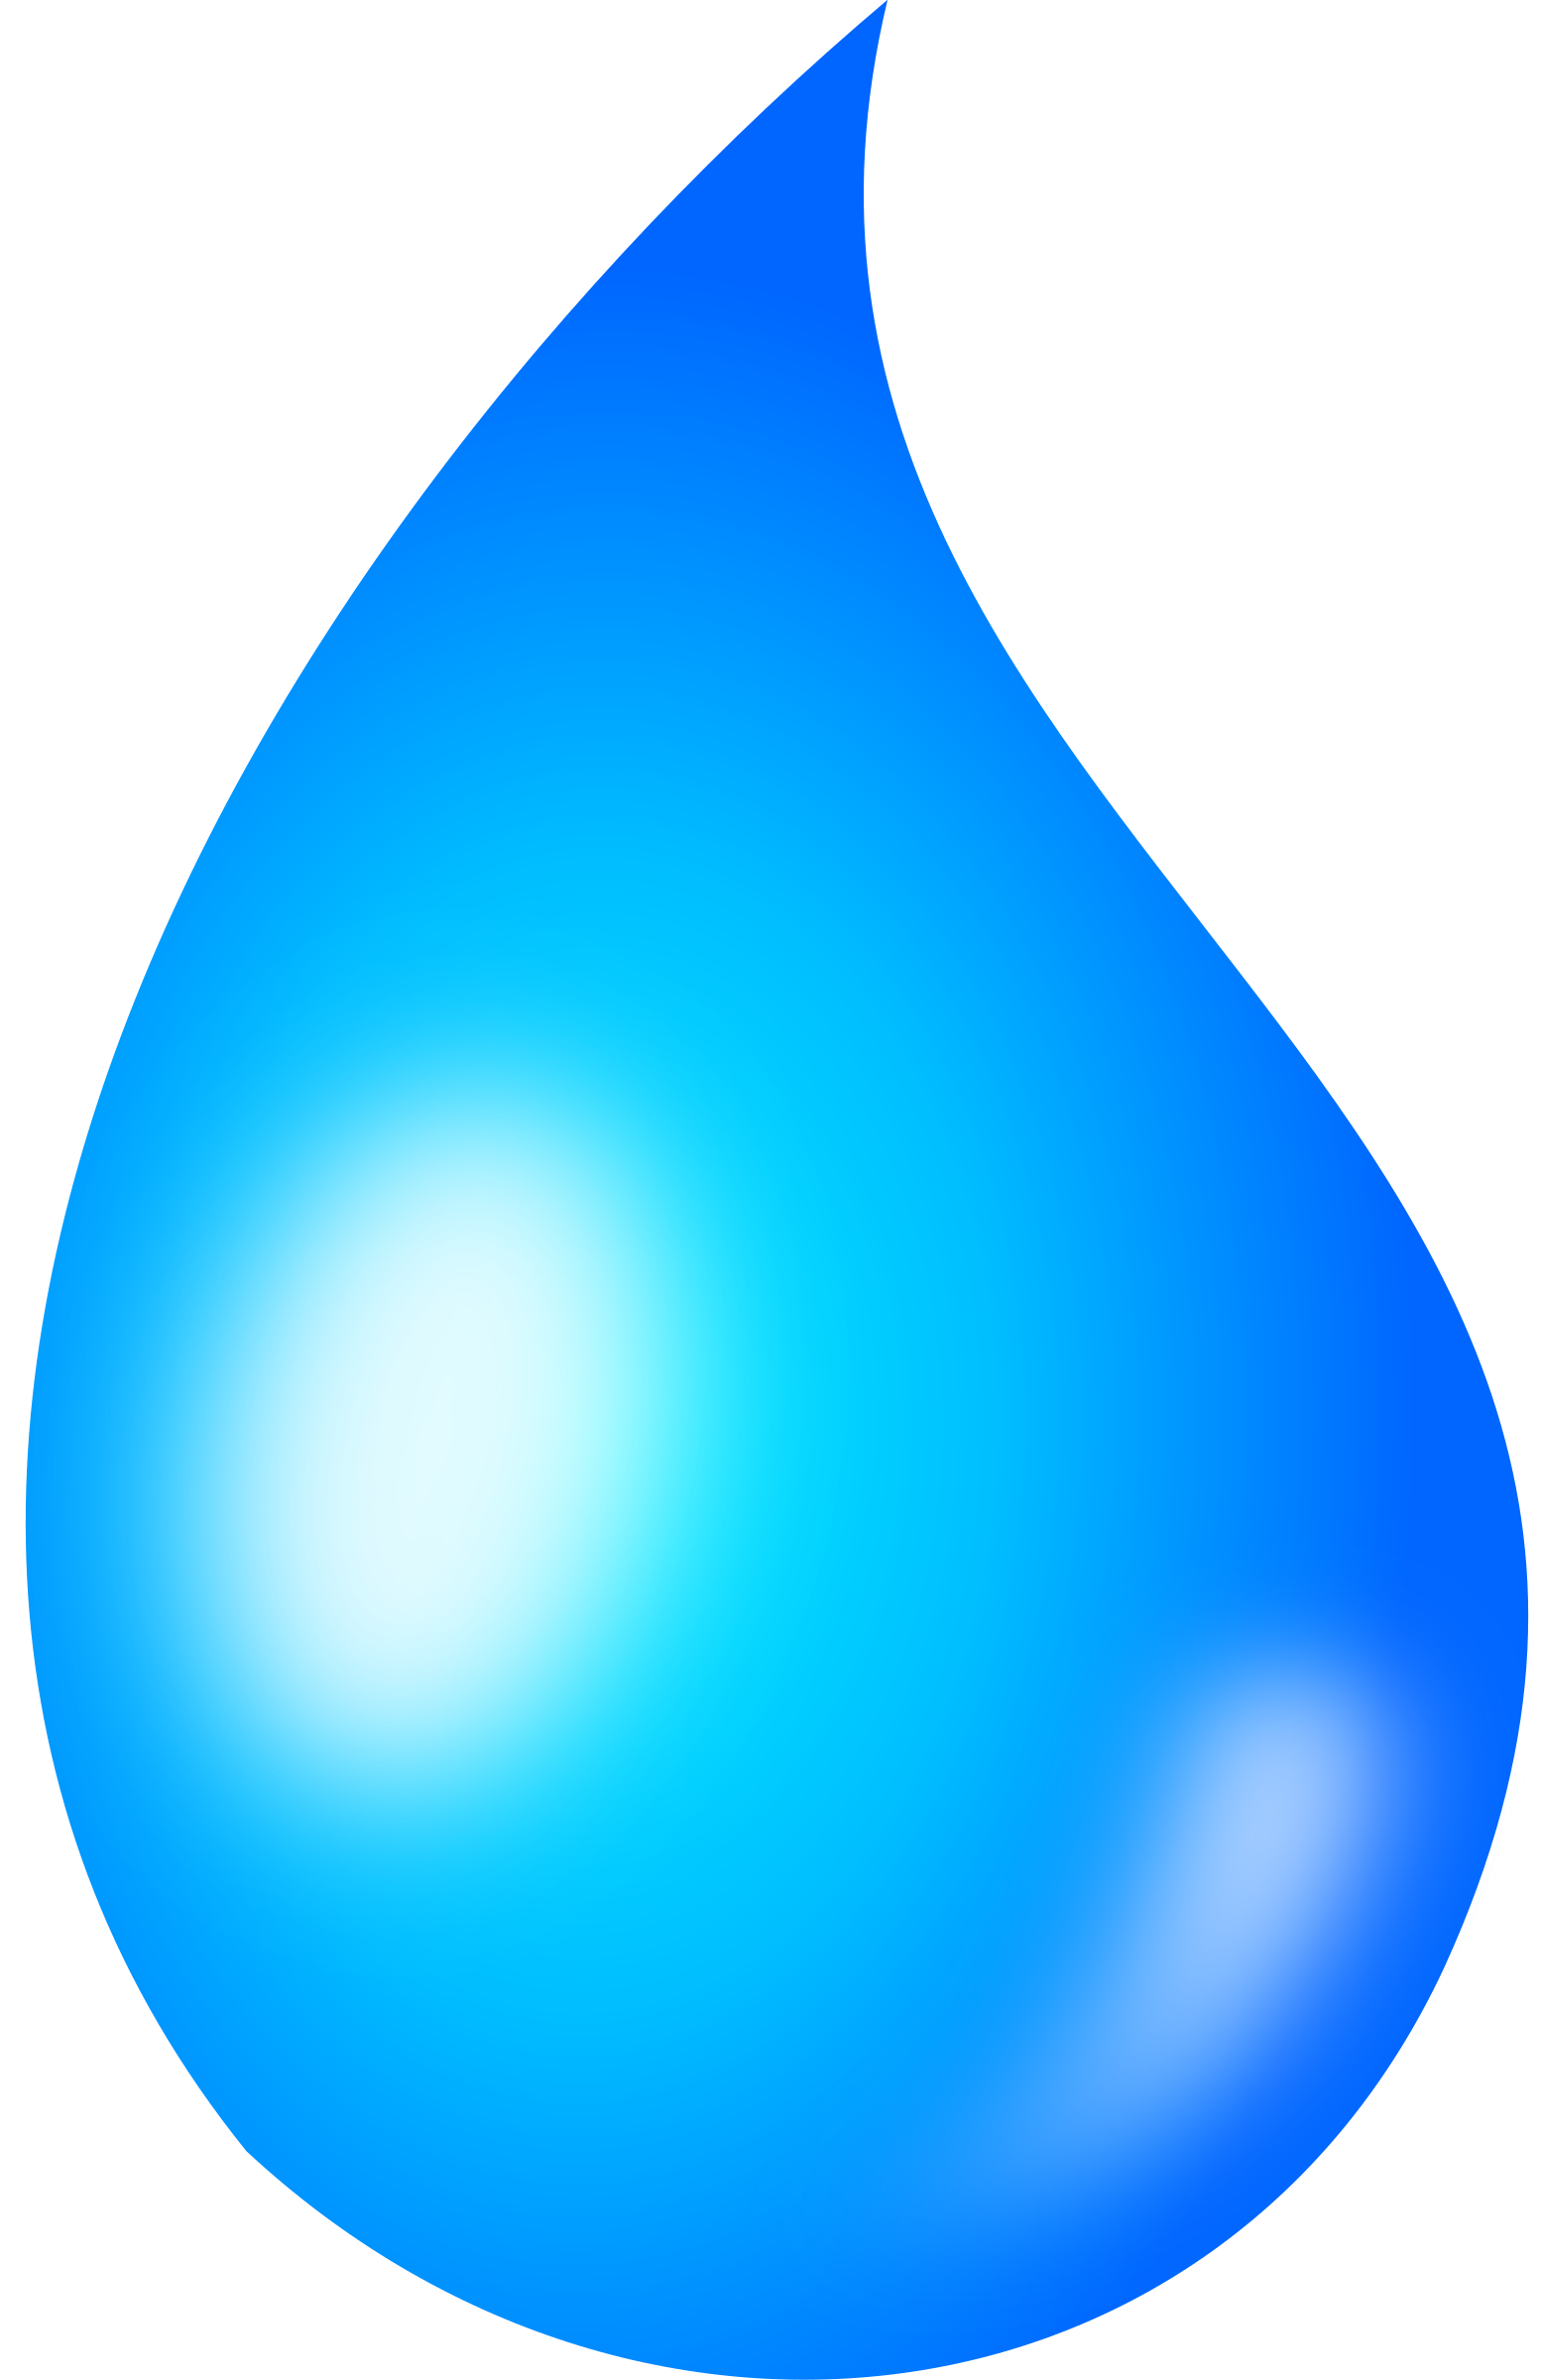 Water drop shaded by. Statistics clipart briefing